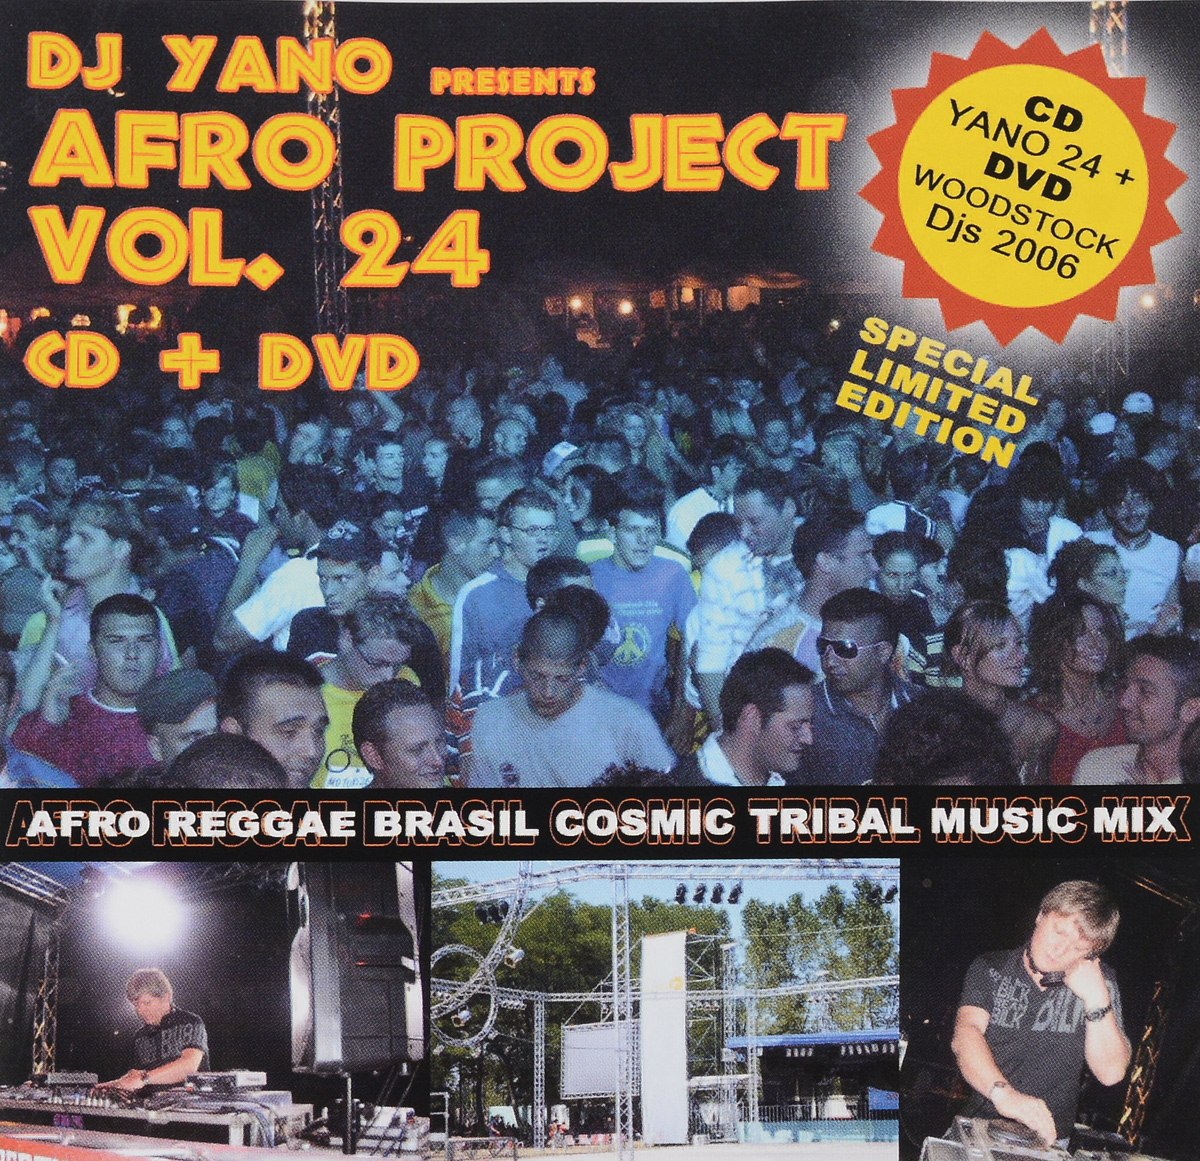 Dj Yano Dj Yano. Afro Project. Vol. 24. Special Limited Edition (CD + DVD) кейс для диджейского оборудования thon dj cd custom case dock